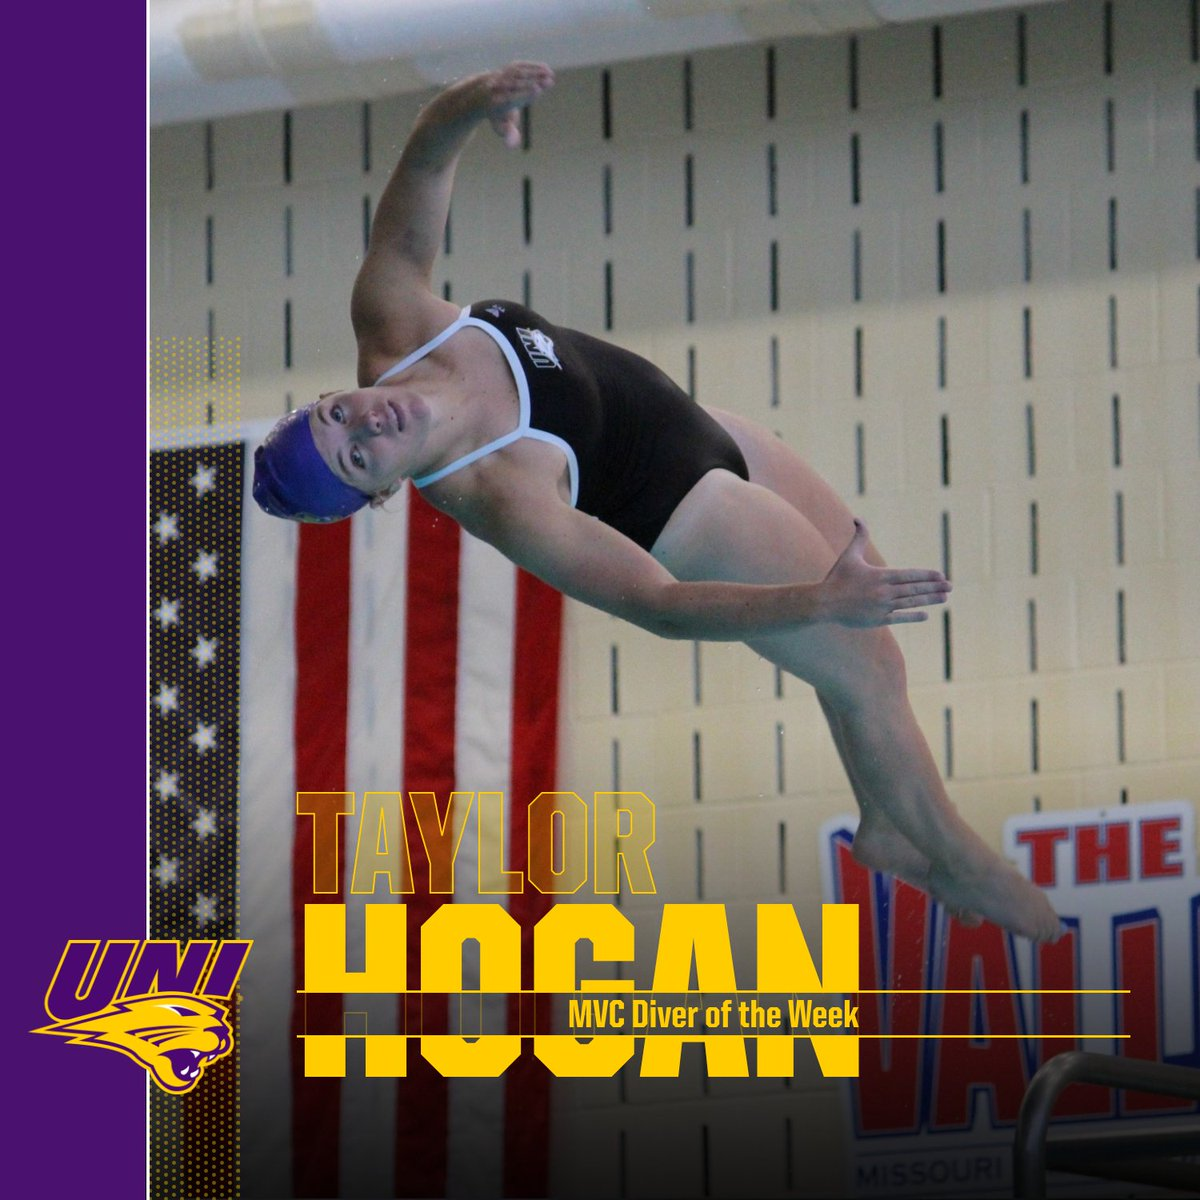 Congrats to Taylor Hogan on MVC Diver of the Week!  #UNIFight<br>http://pic.twitter.com/OSbbOzWb2p